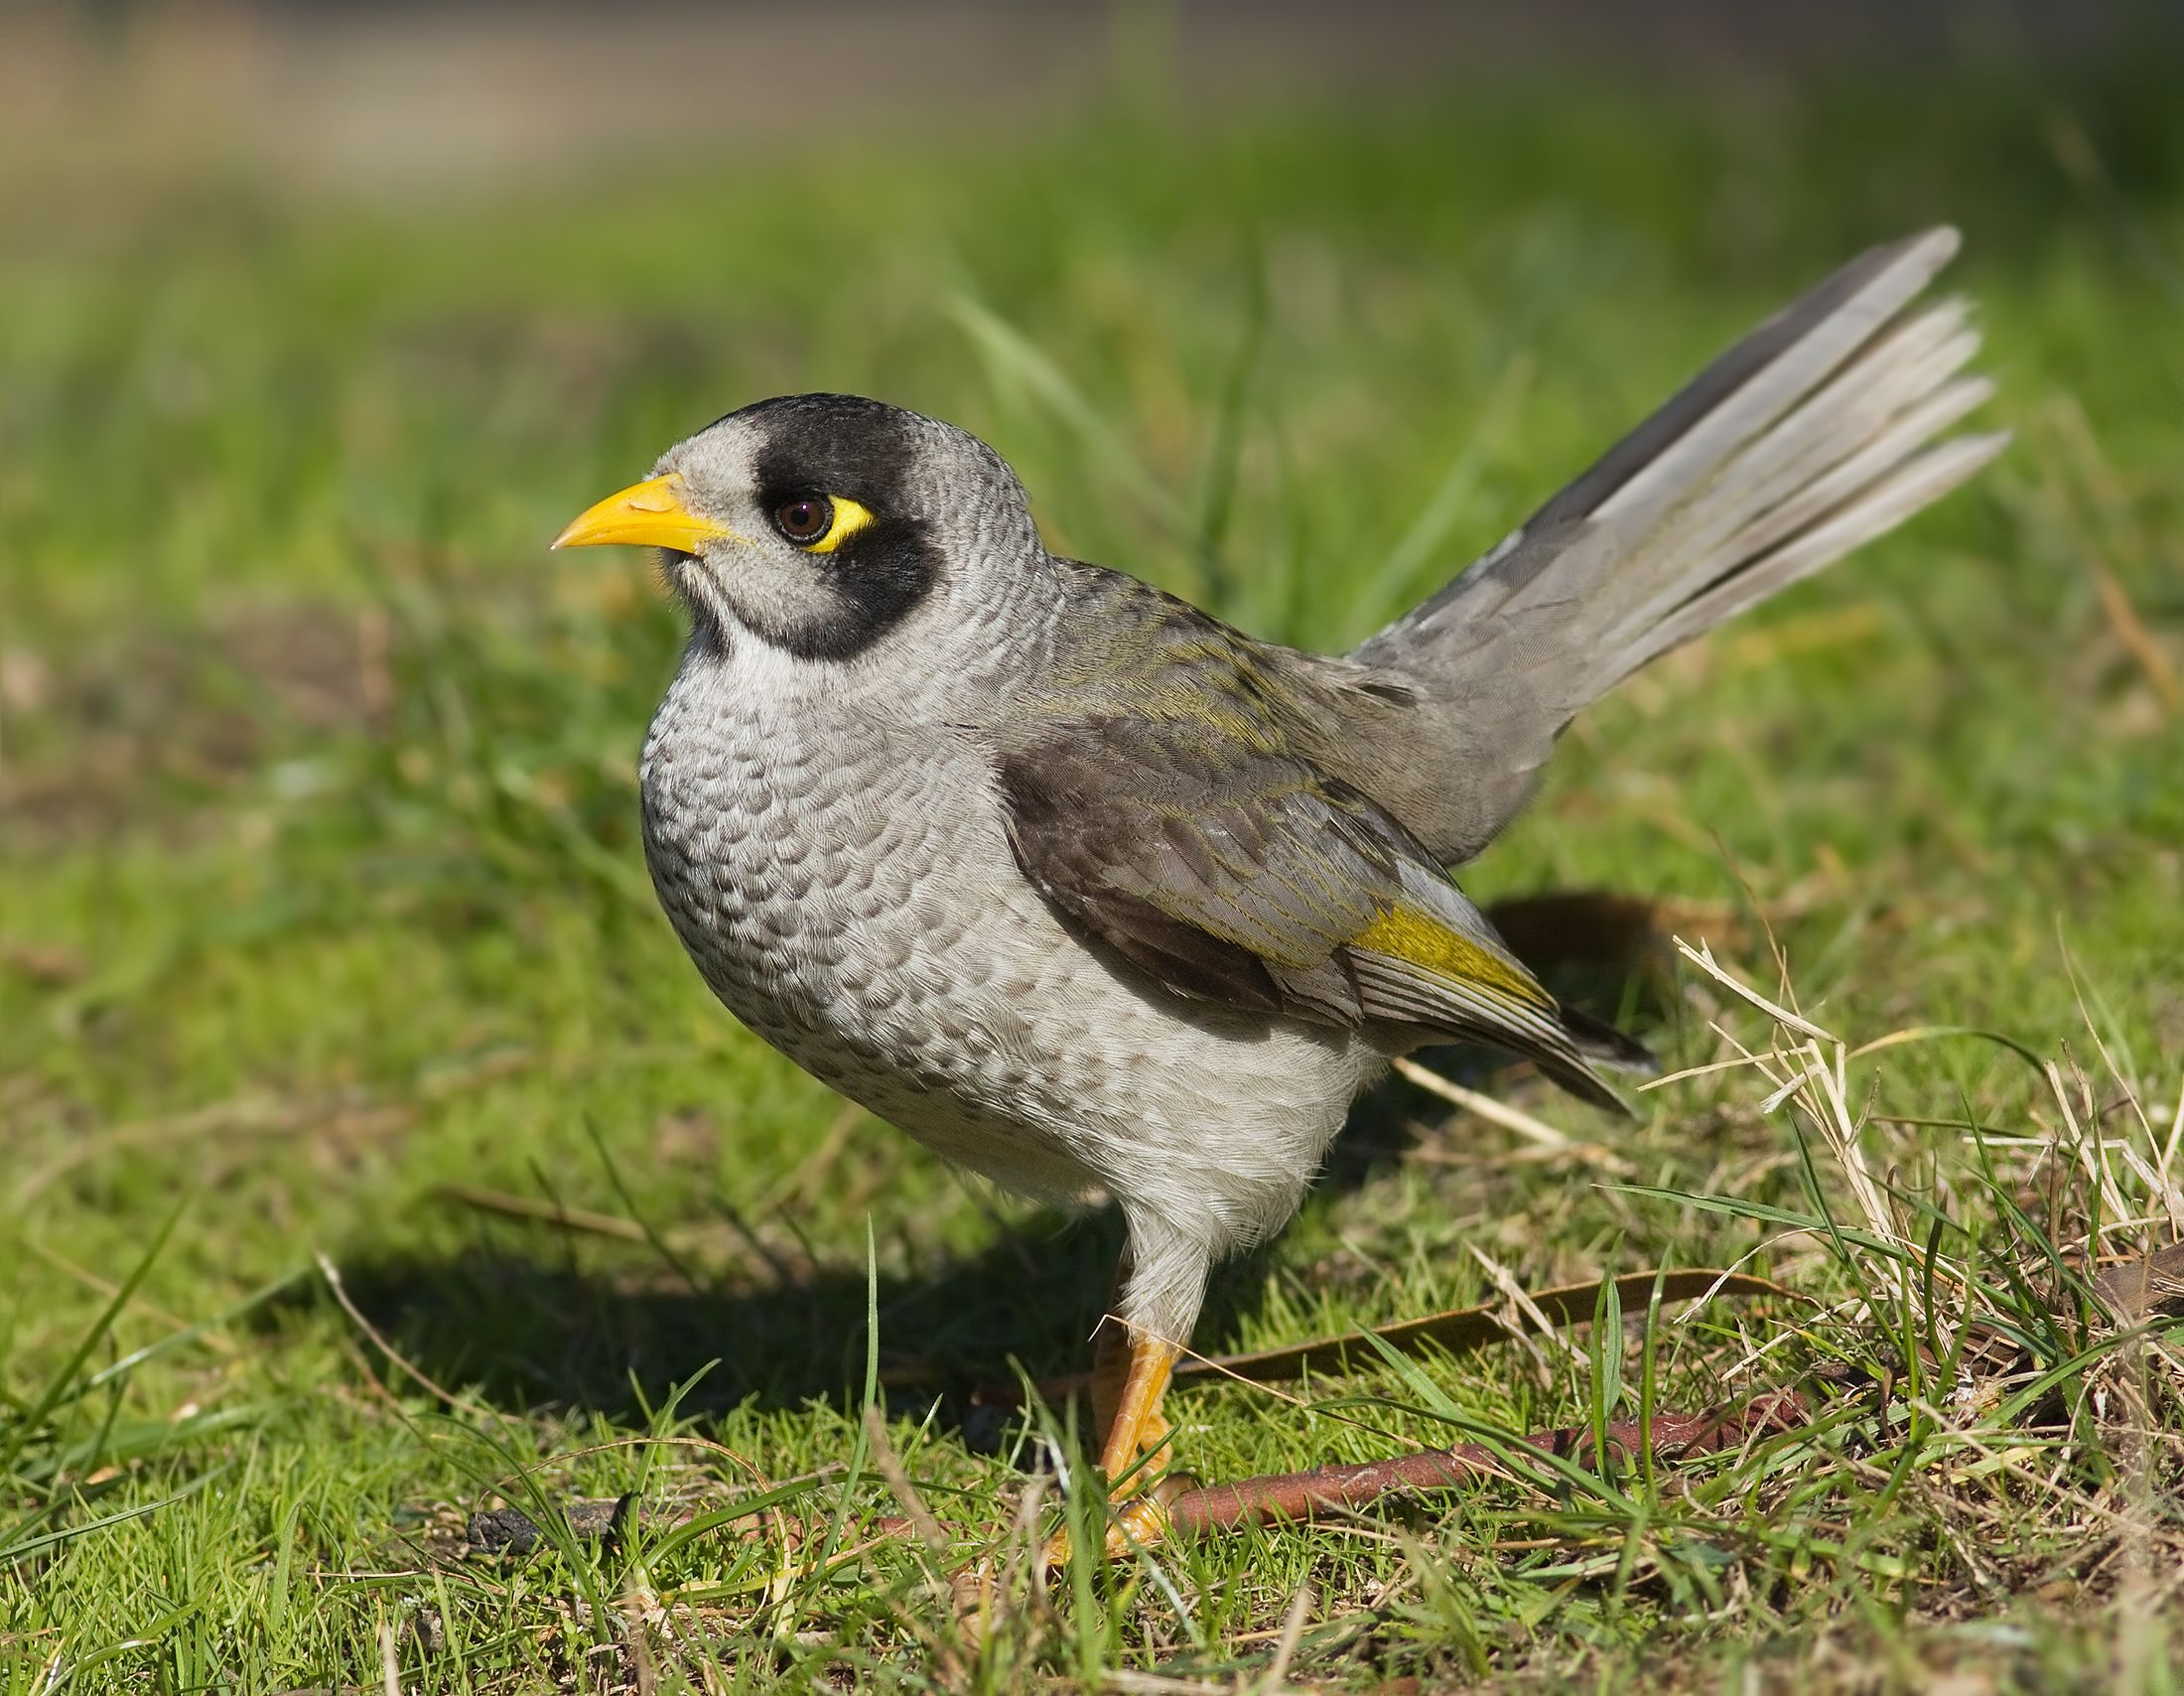 A Grey Bird With A Distinctive Yellow Patch Behind The Eye Yellow